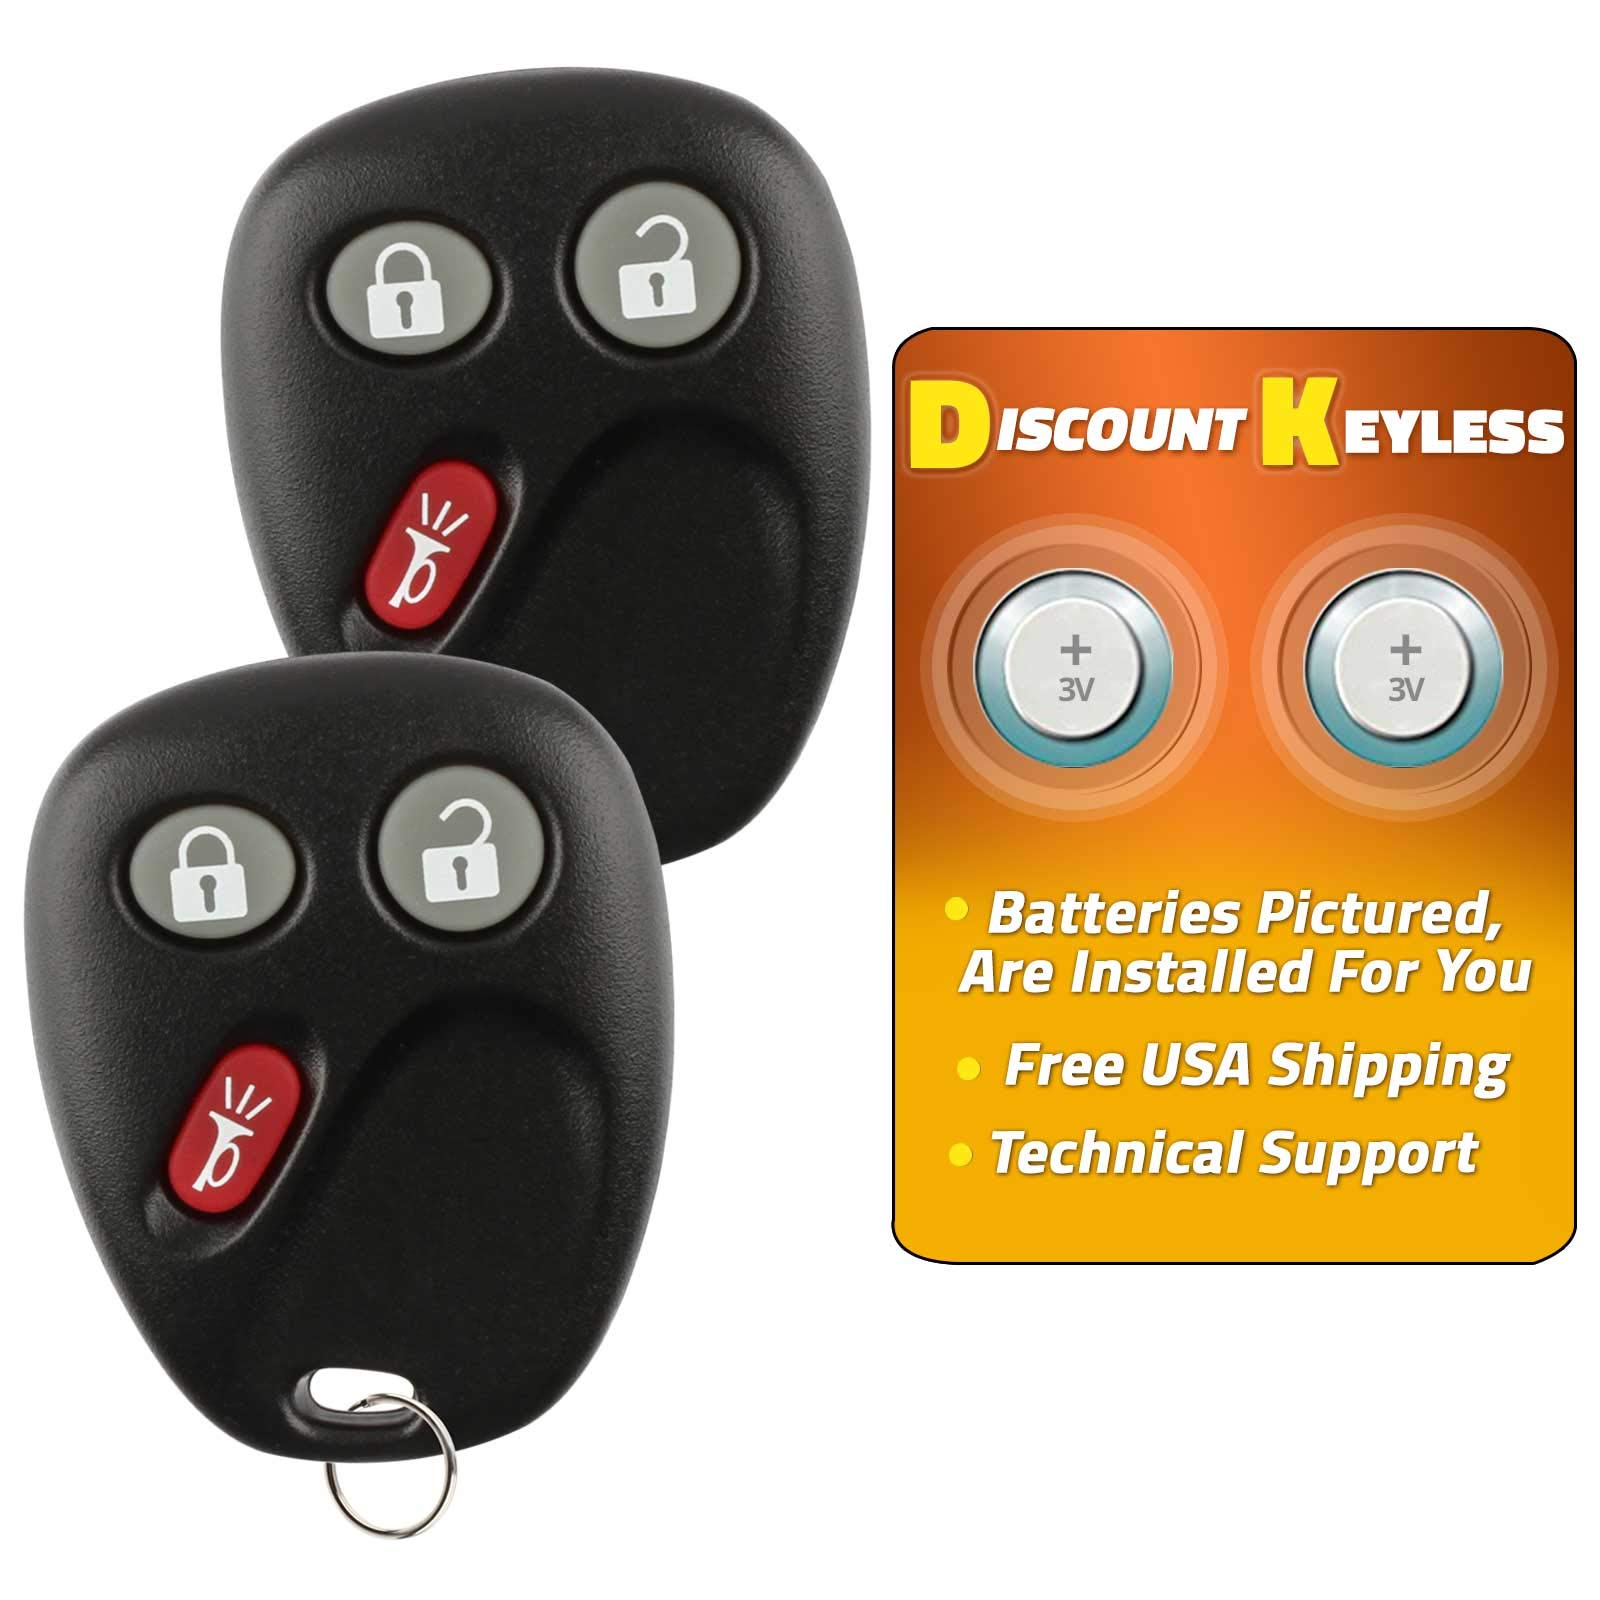 Discount Keyless Replacement Key Fob Car Keyless Entry Remote for Yukon Tahoe Suburban Silverado Sierra Avalanche Escalade LHJ011 (2 Pack) by Discount Keyless